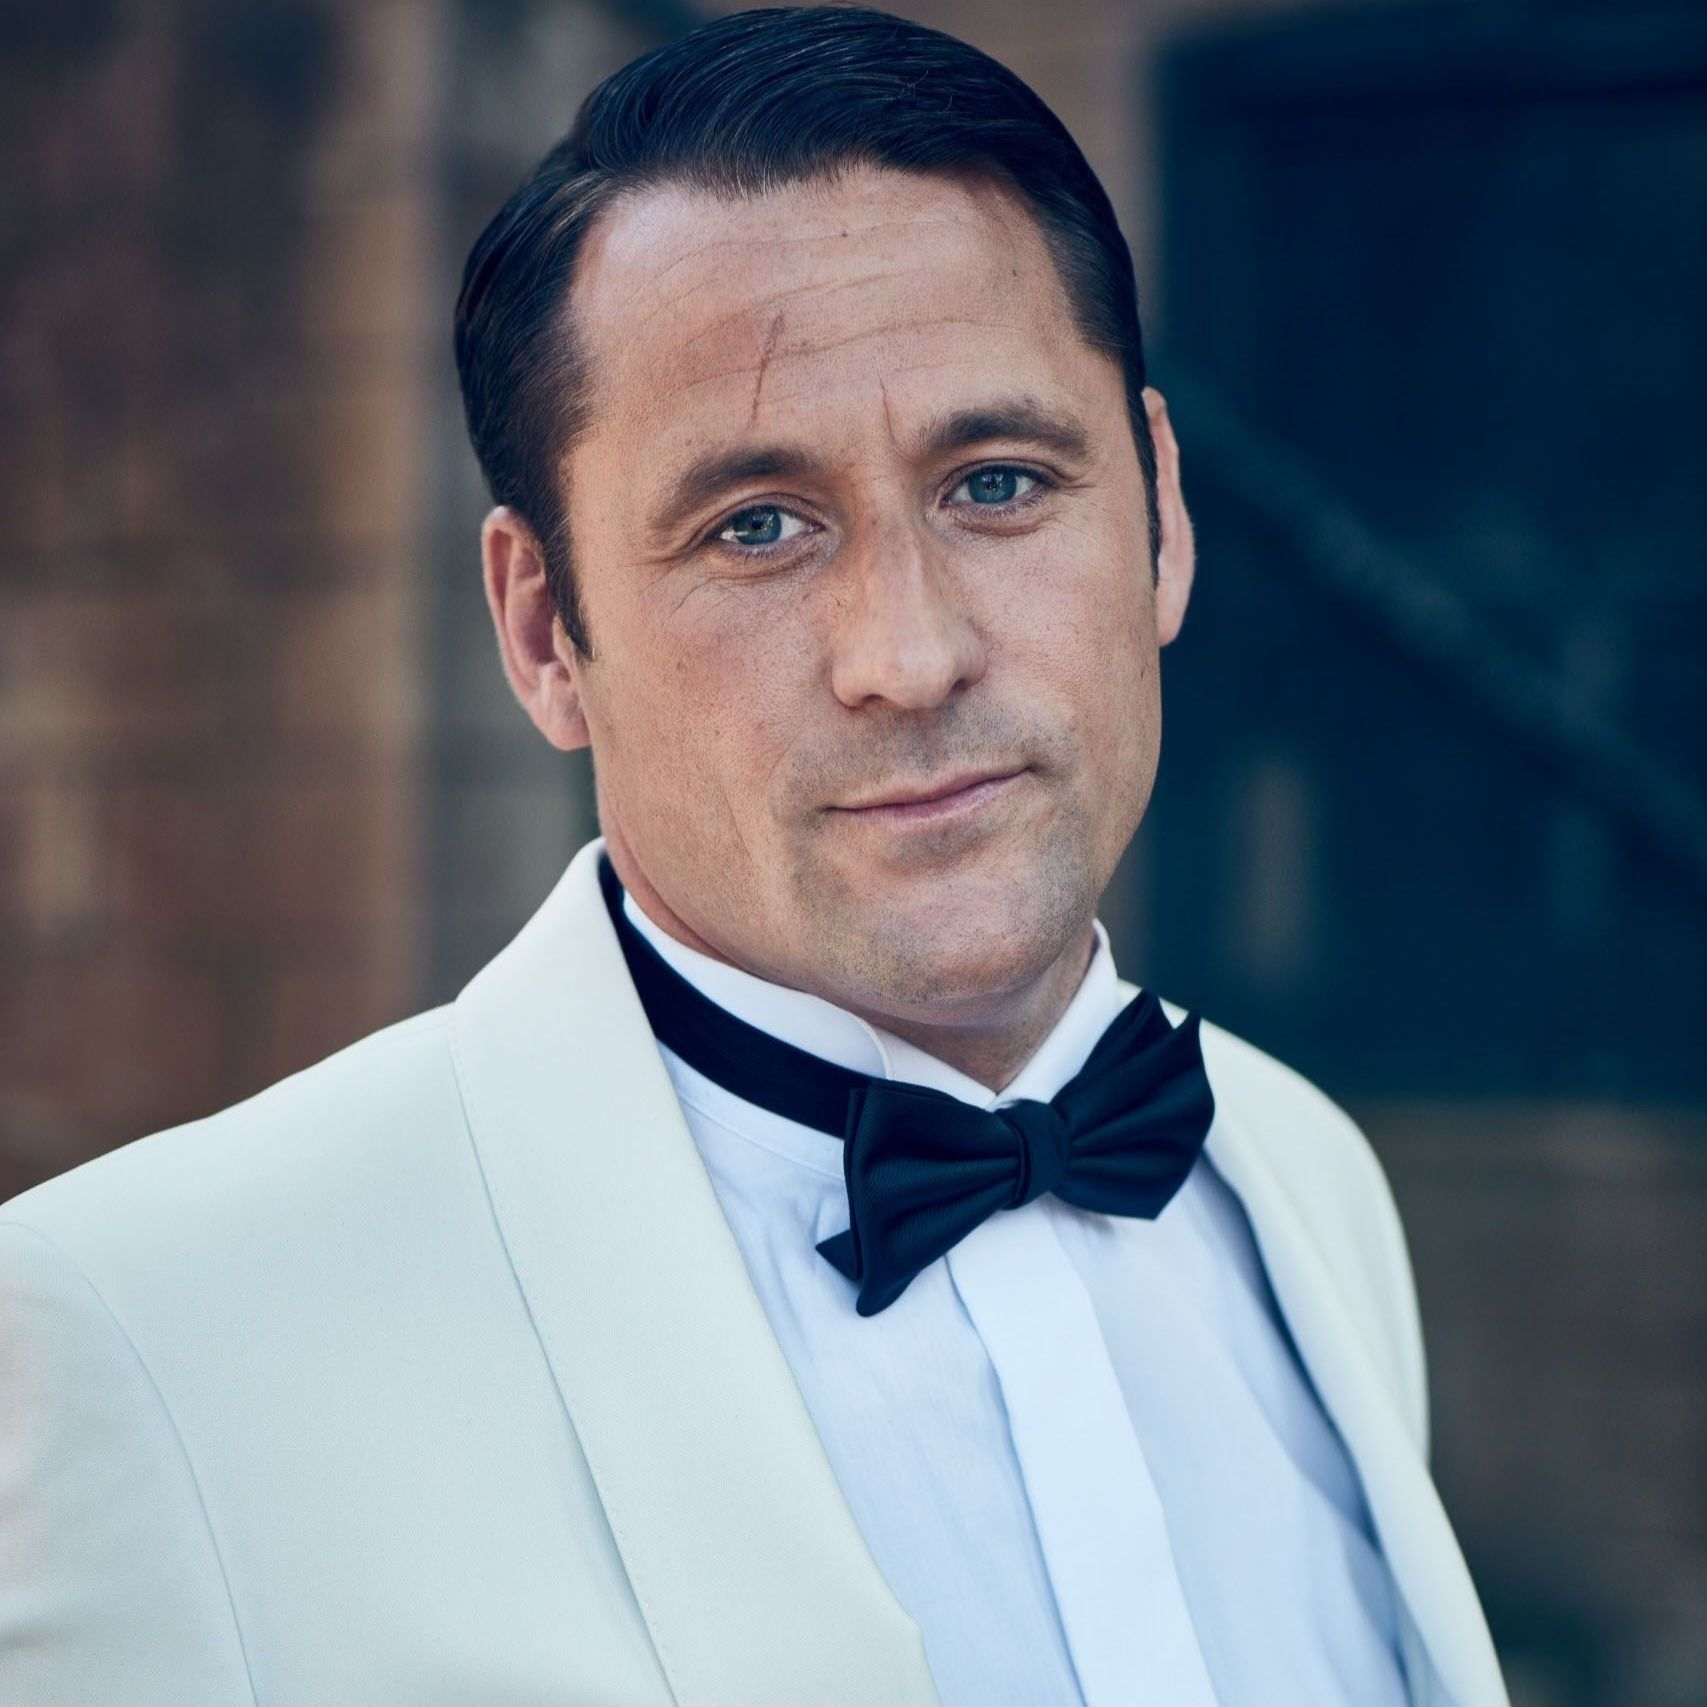 Hollyoaks heartbreak for Tony Hutchinson as he gets closer to the truth about Harry